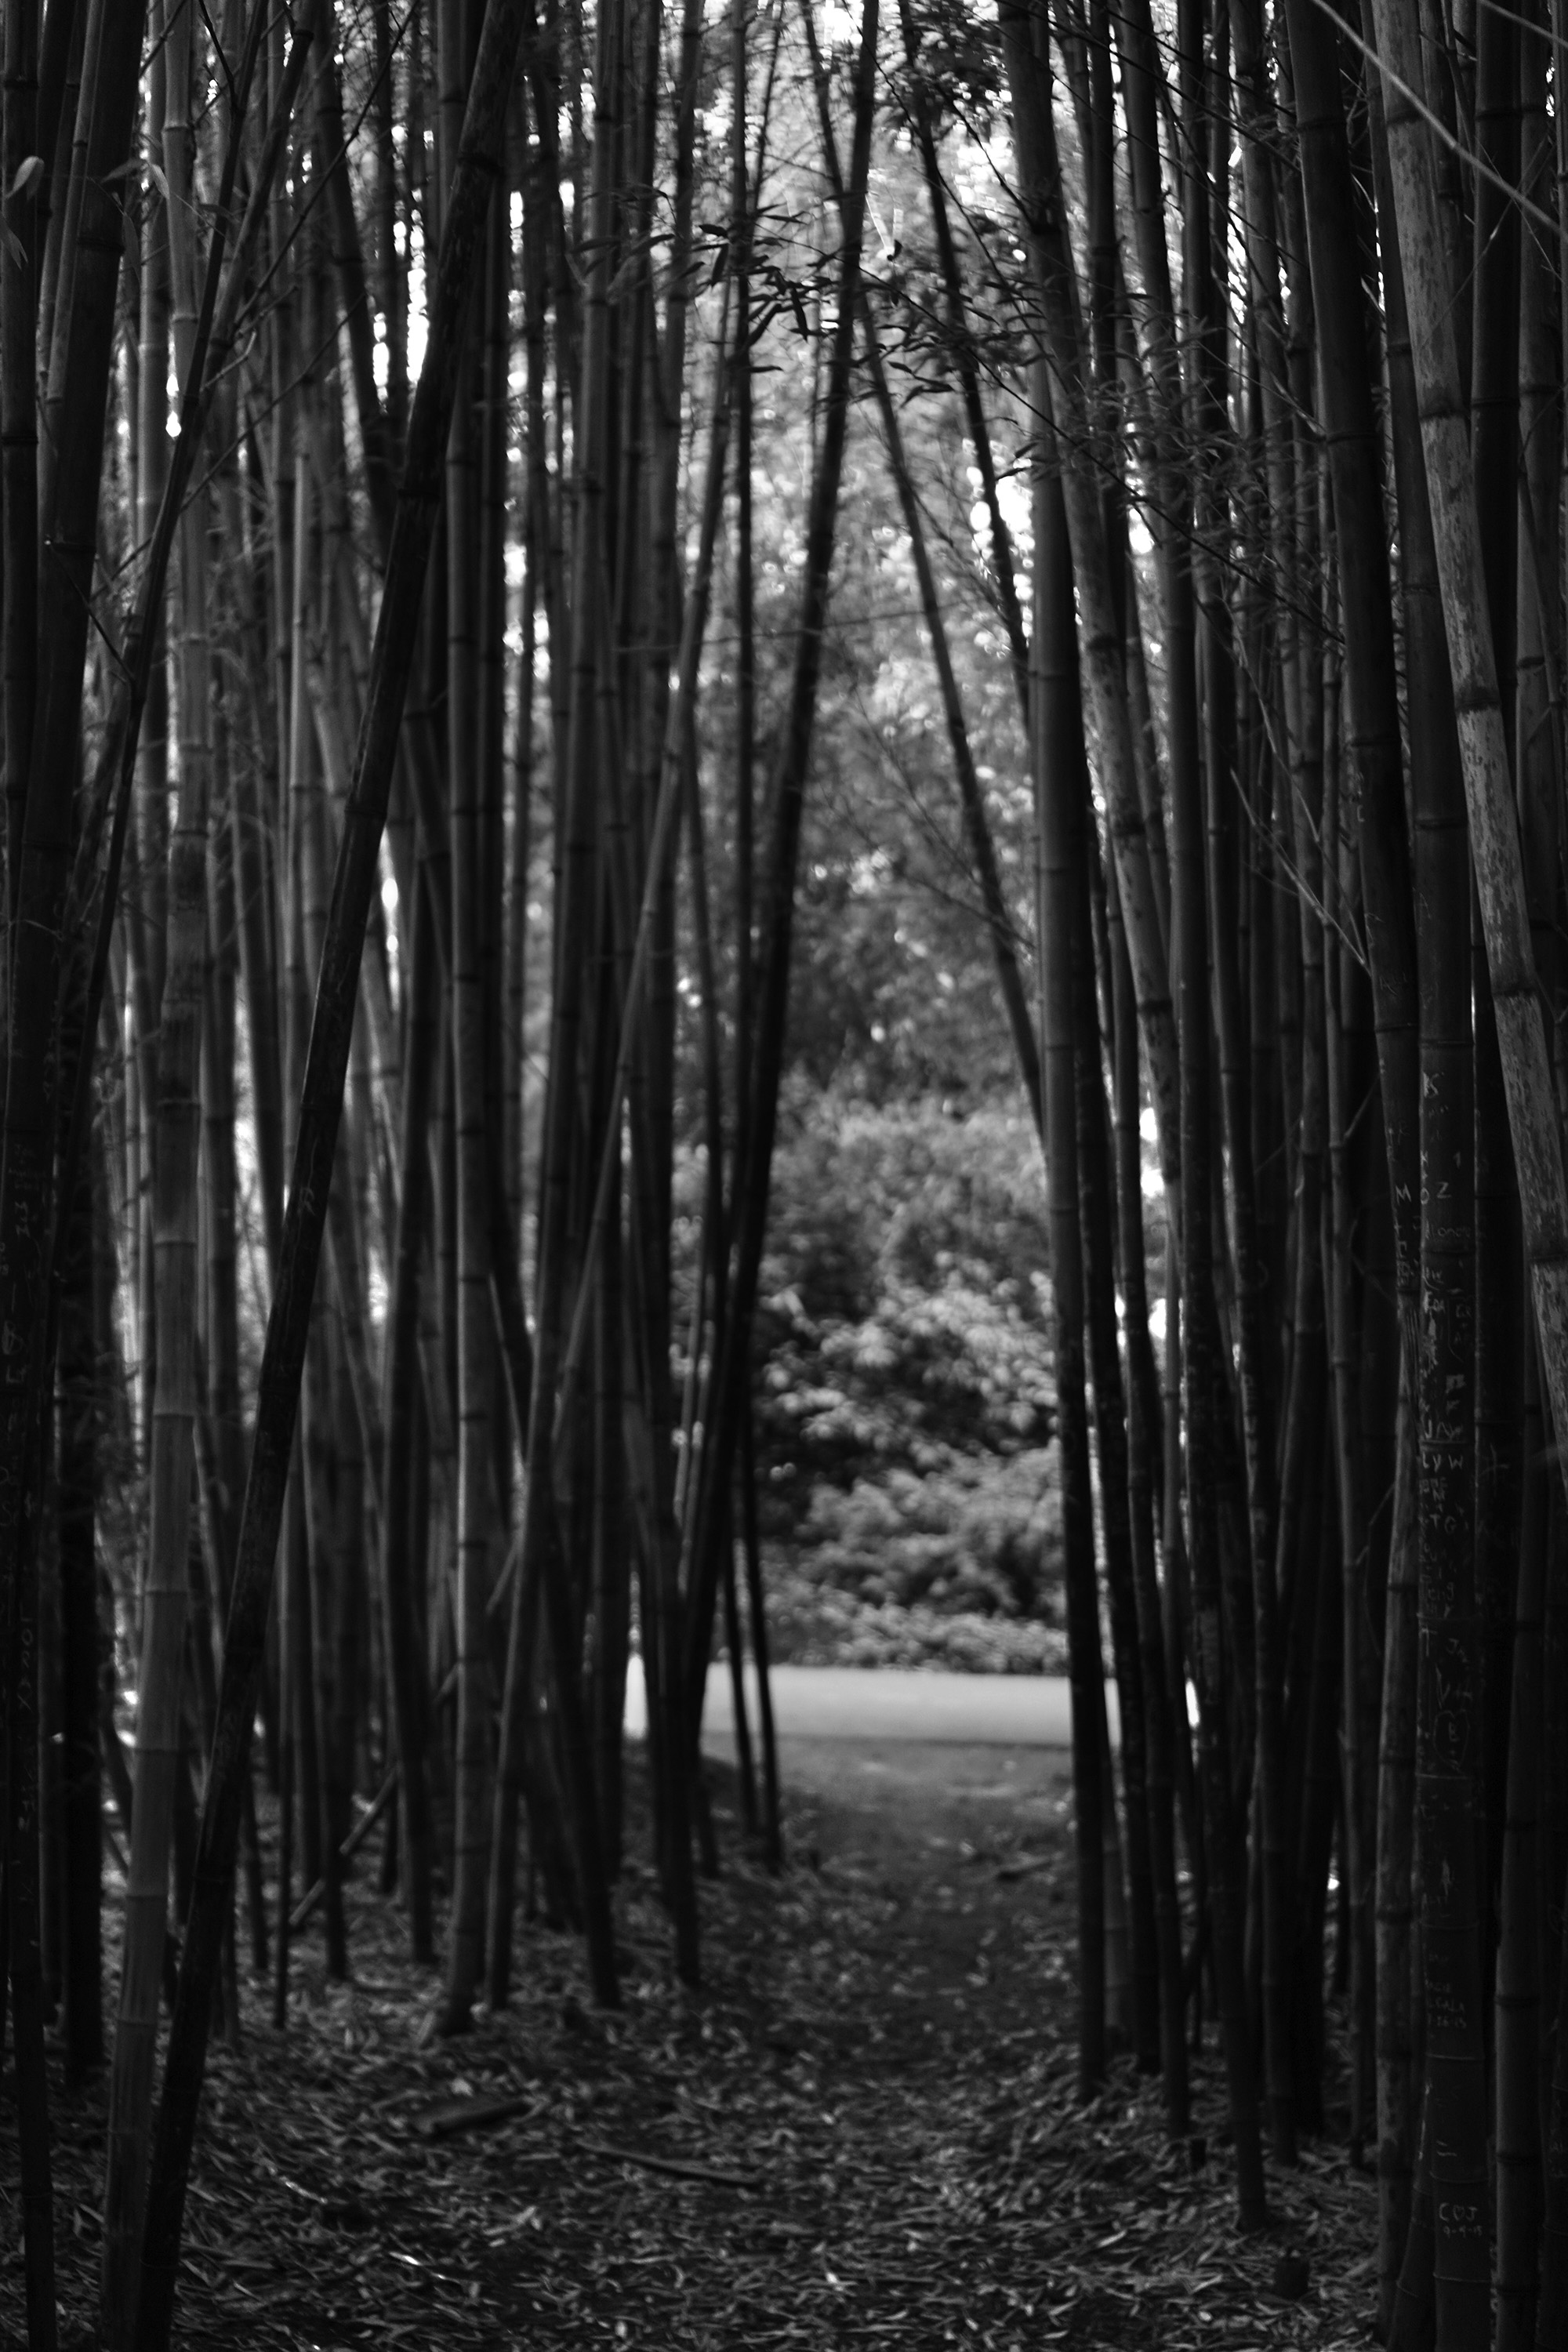 View through the bamboo, San Francisco Botanical Garden / Darker than Green